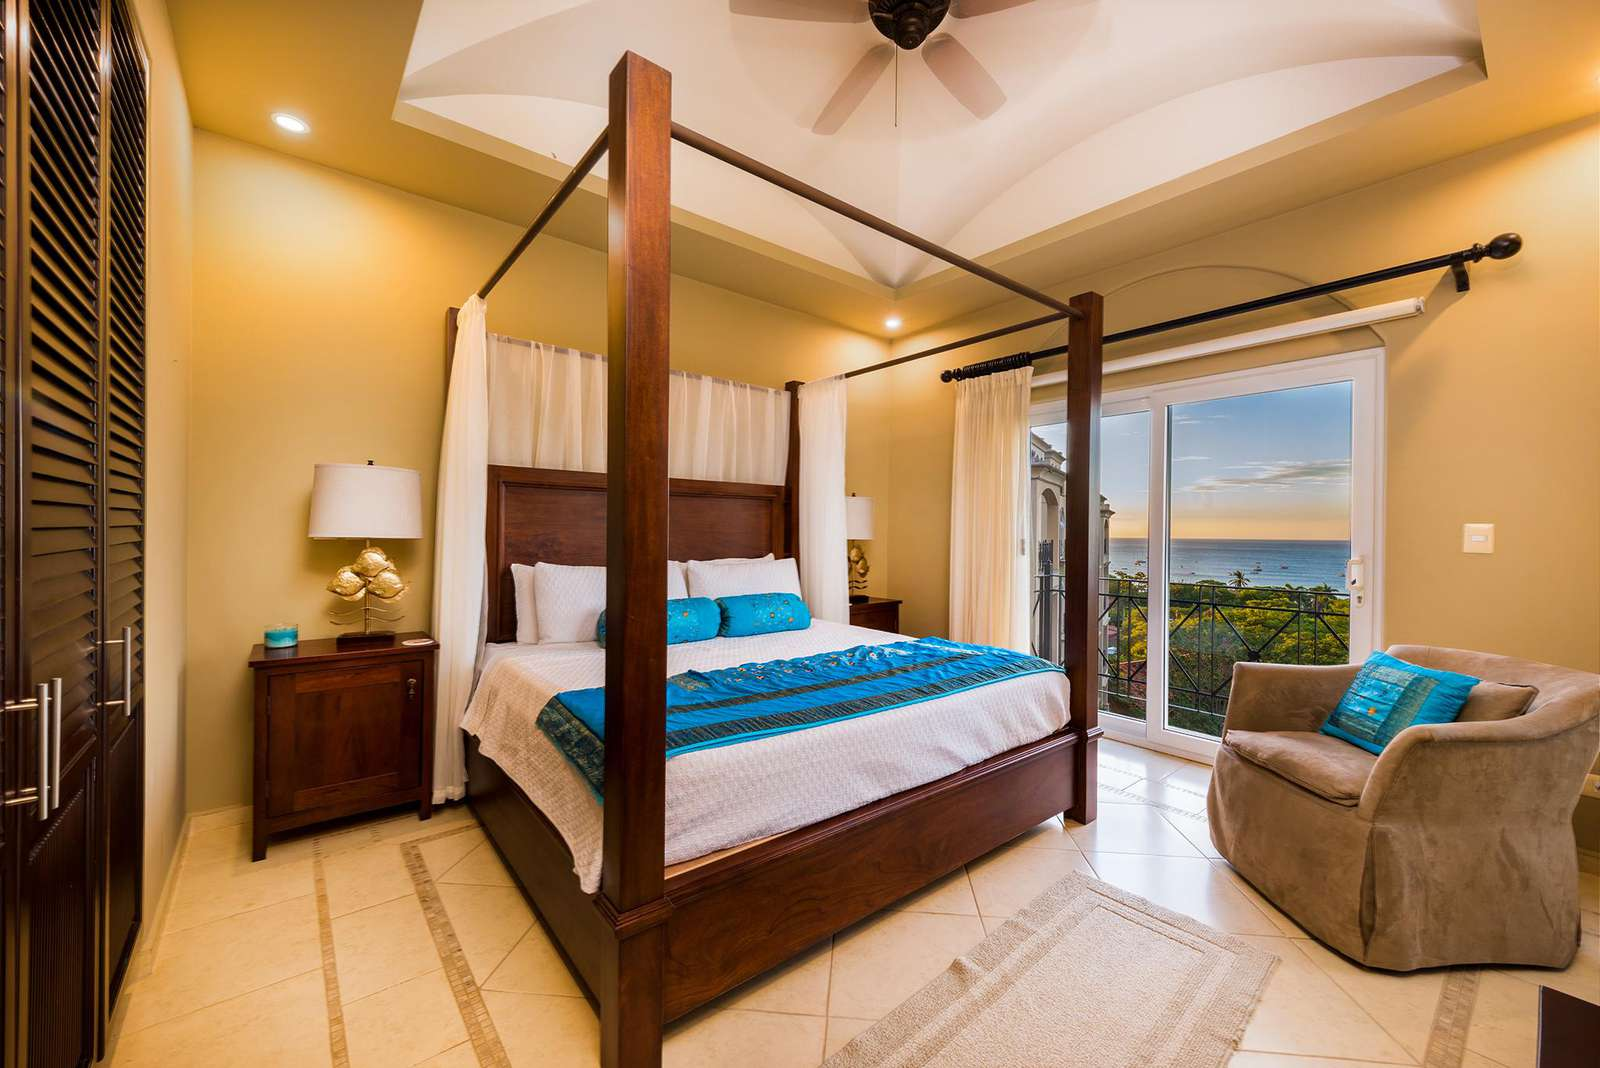 Master bedroom, king size canopy bed, full bathroom, ocean views